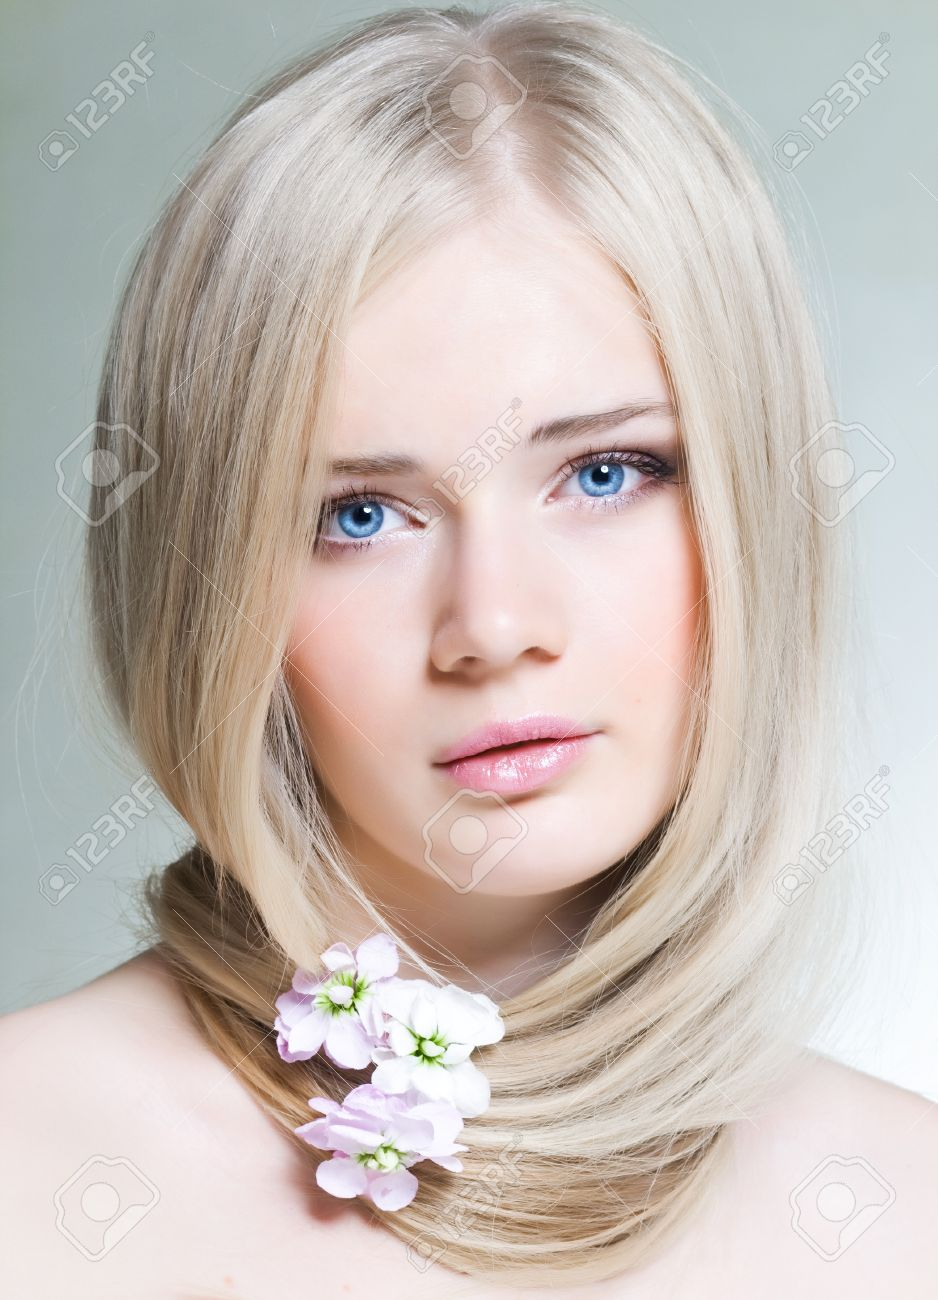 Beautiful young girl with white hair and blue eyes Stock Photo - 11034660